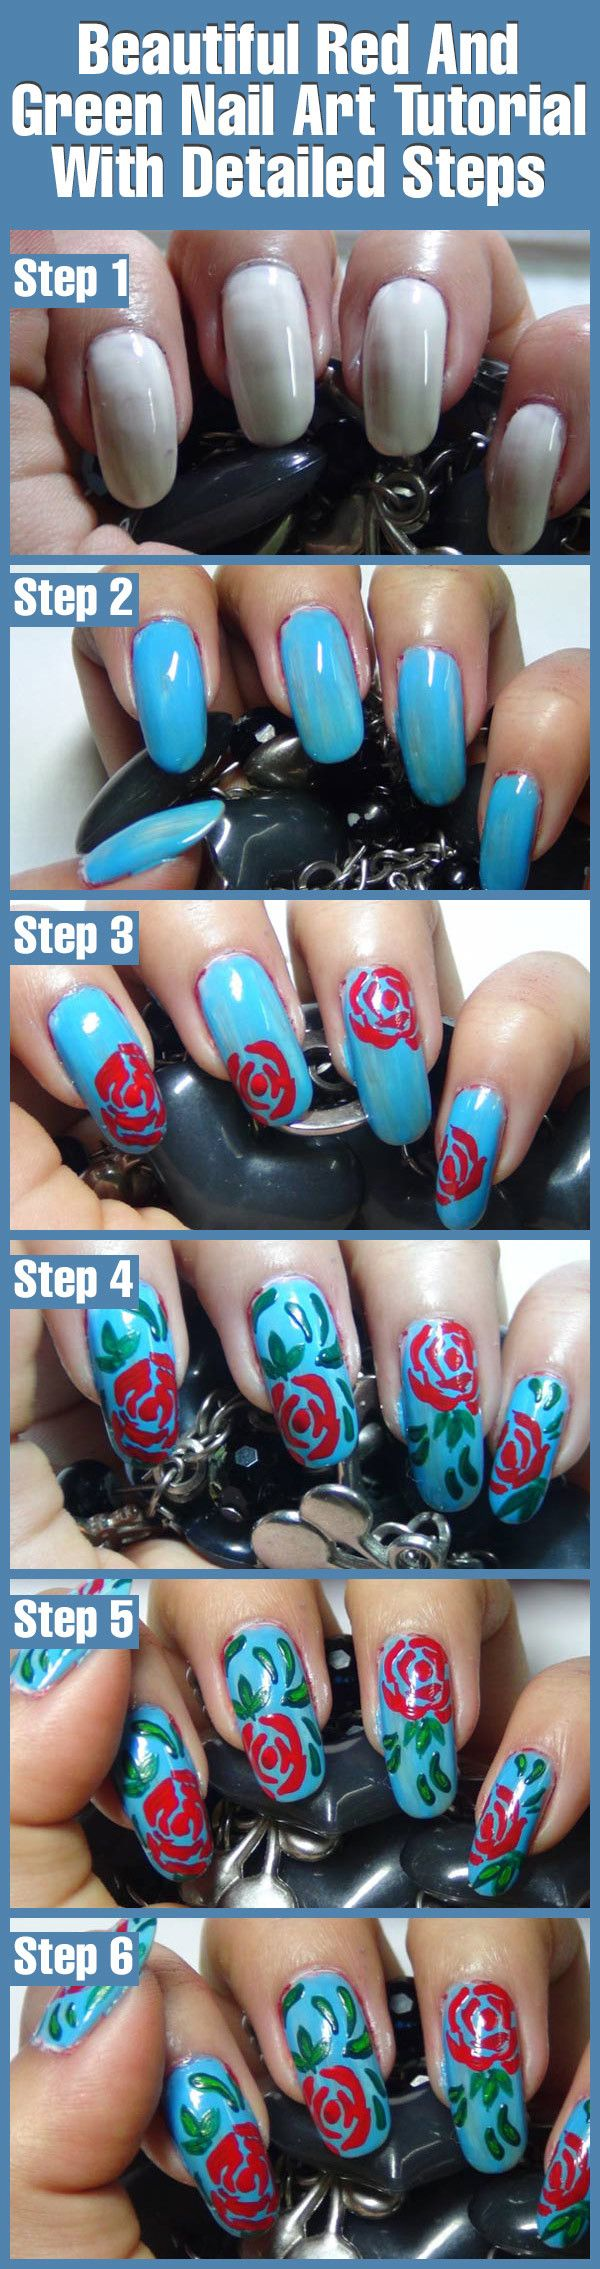 2 Amazing Red Nail Art Tutorials With Detailed Steps | Pinterest ...